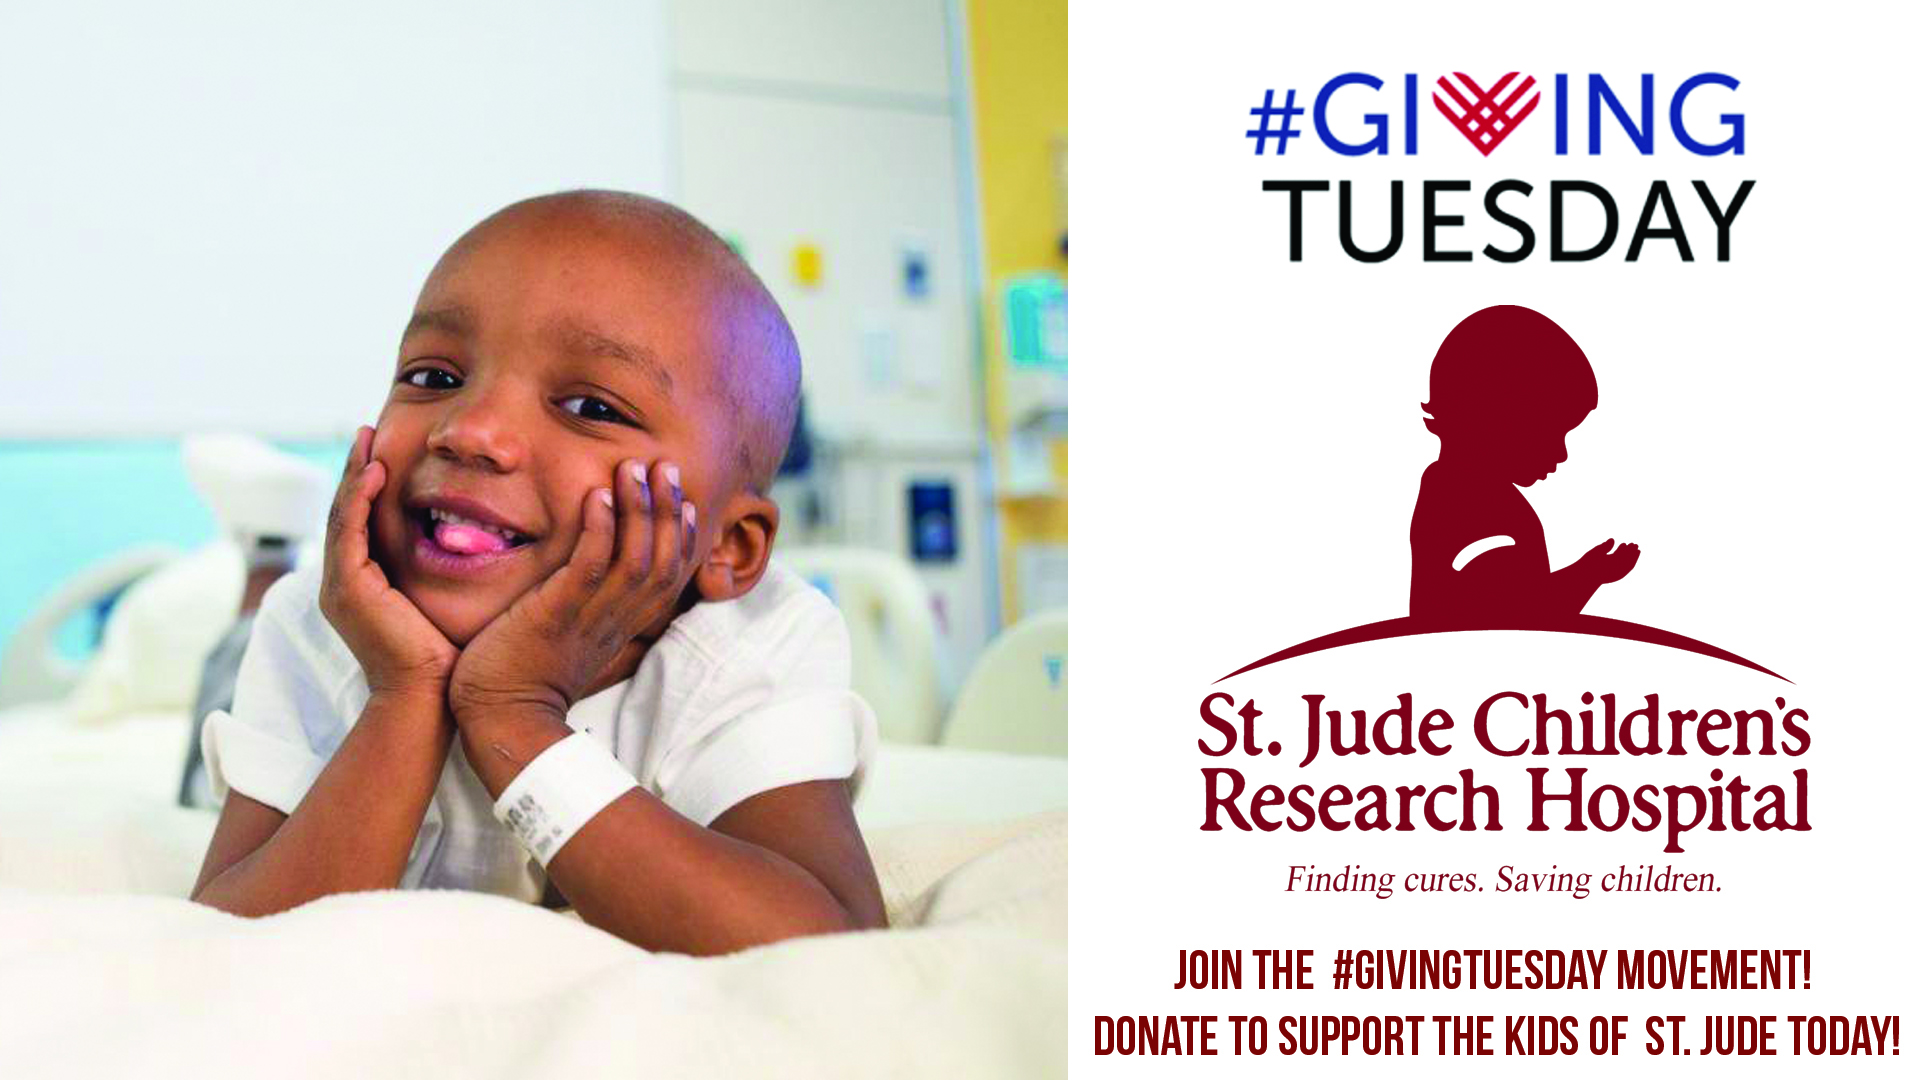 #GivingTuesday - St. Jude